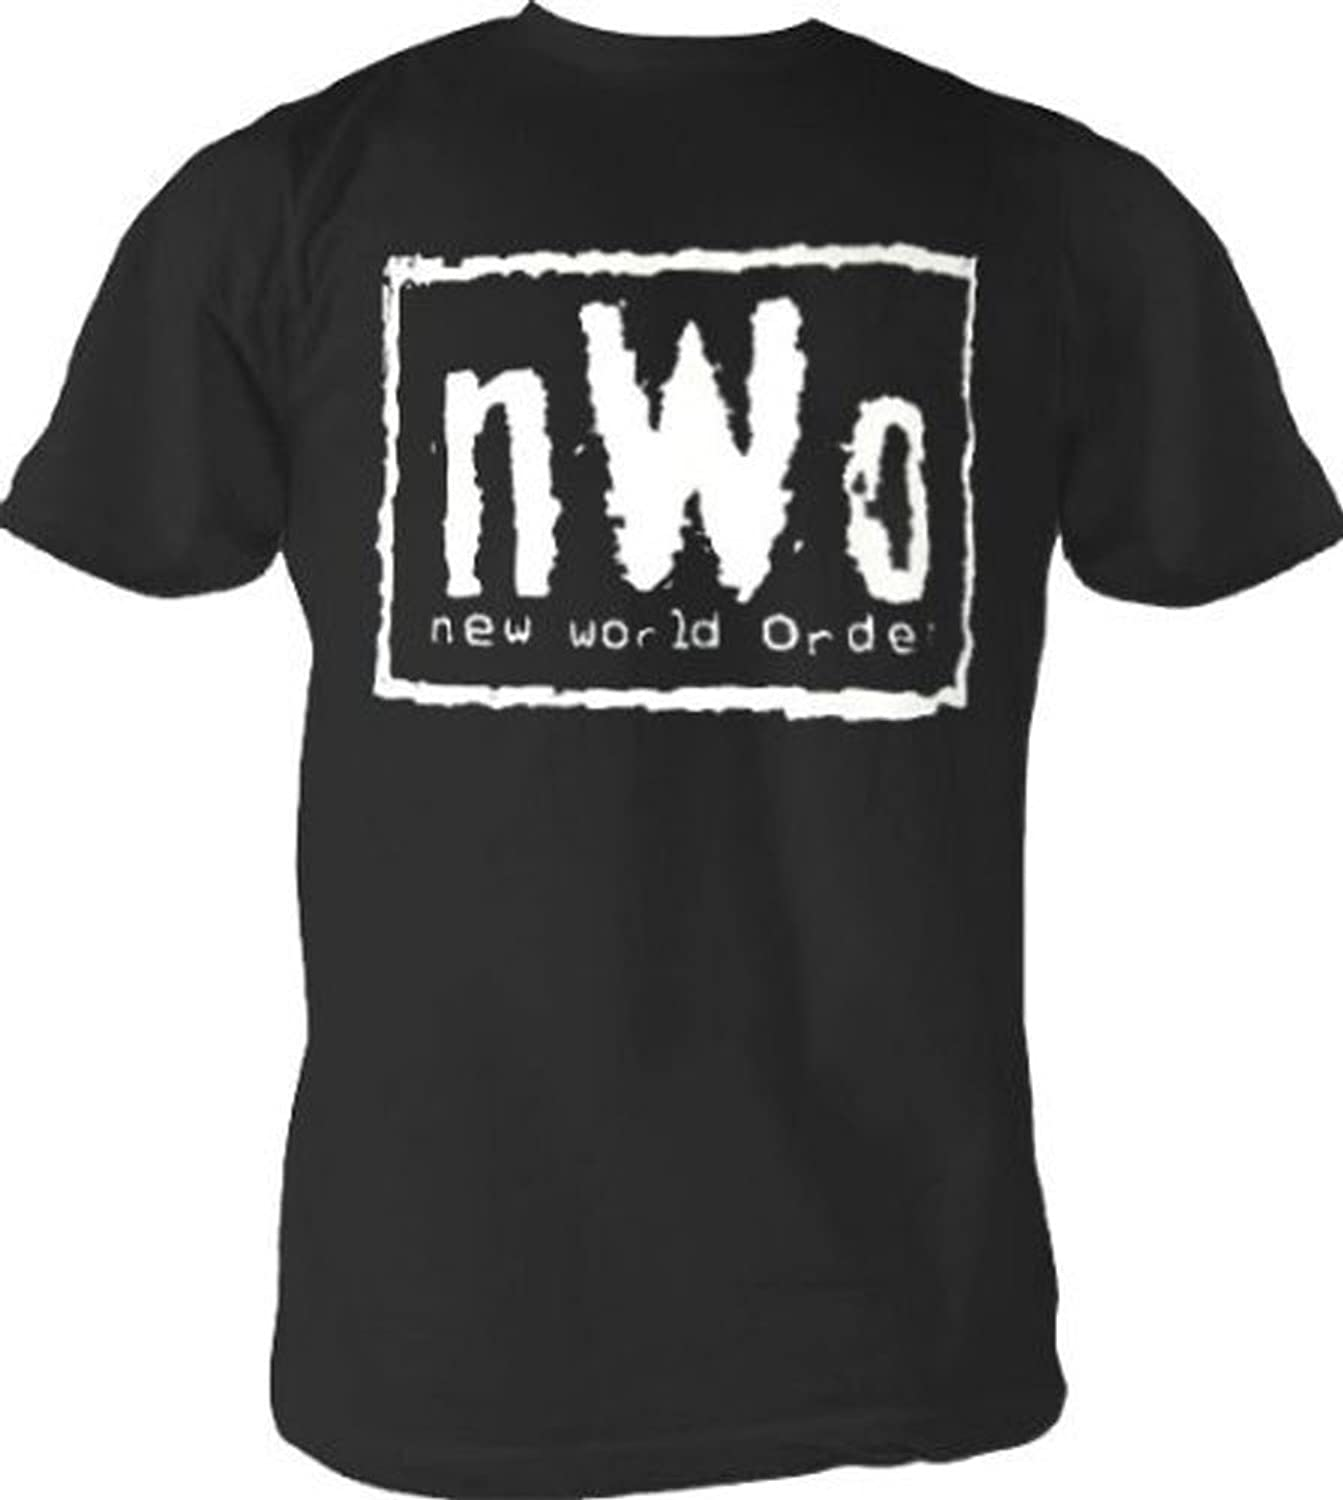 Amazon.com: New World Order Men's NWO Wrestling T-shirt: Clothing